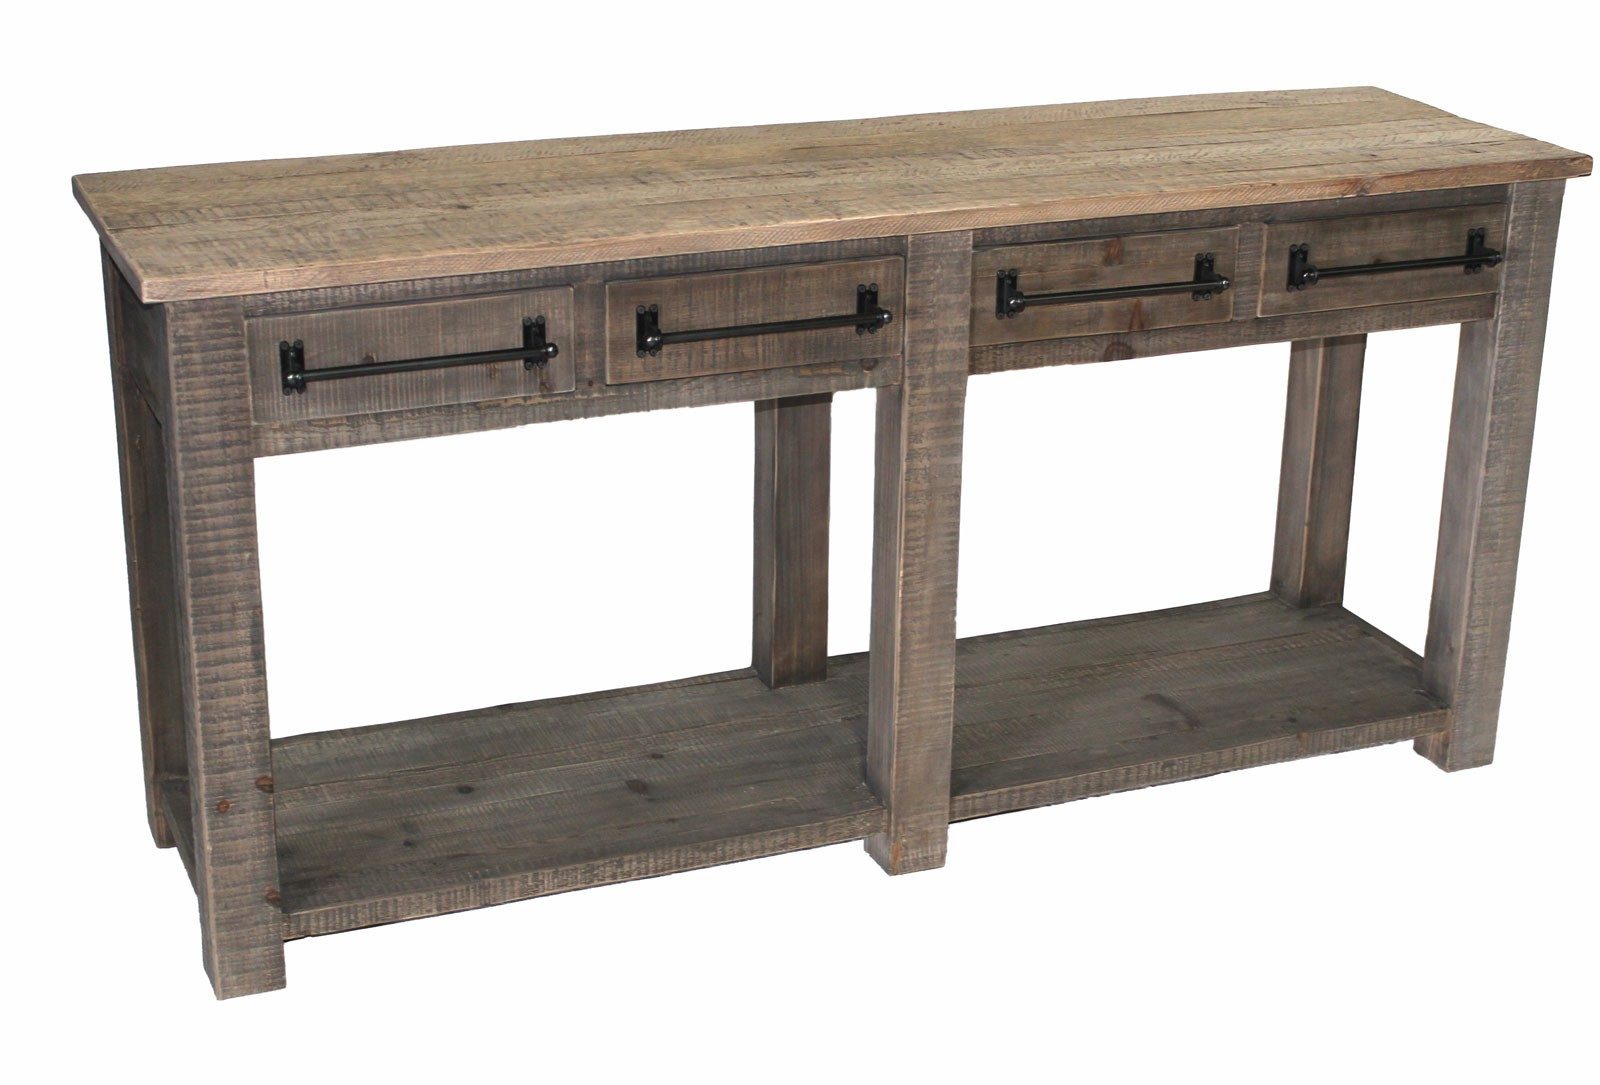 Jj 1567 pine 4 drawer sofa table - Pine sofa table with drawers ...